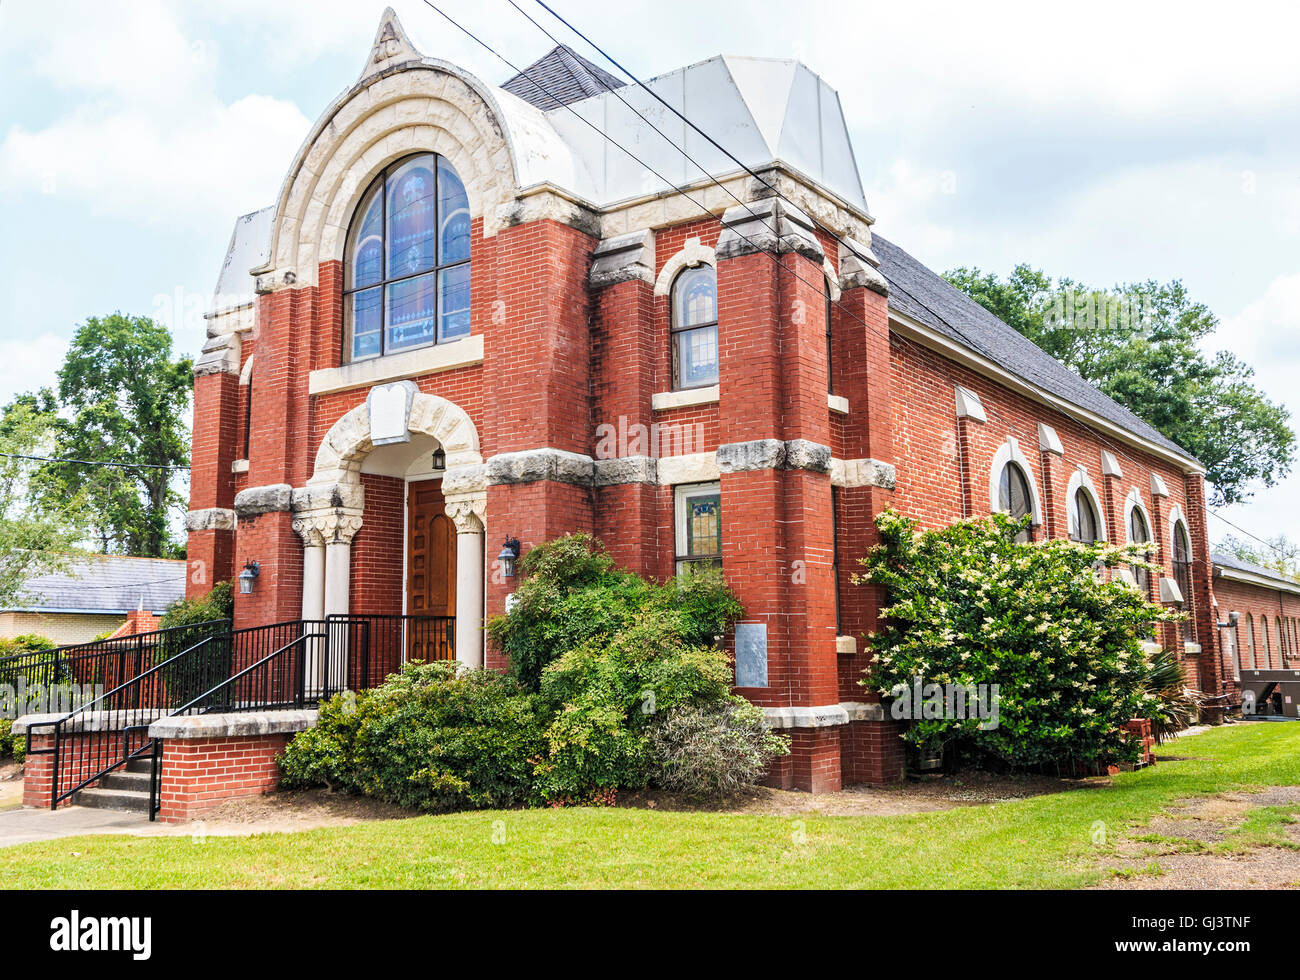 Temple Sinai, Jewish synagogue in downtown Lake Charles, Louisiana. One of the historic buildings in the city. - Stock Image